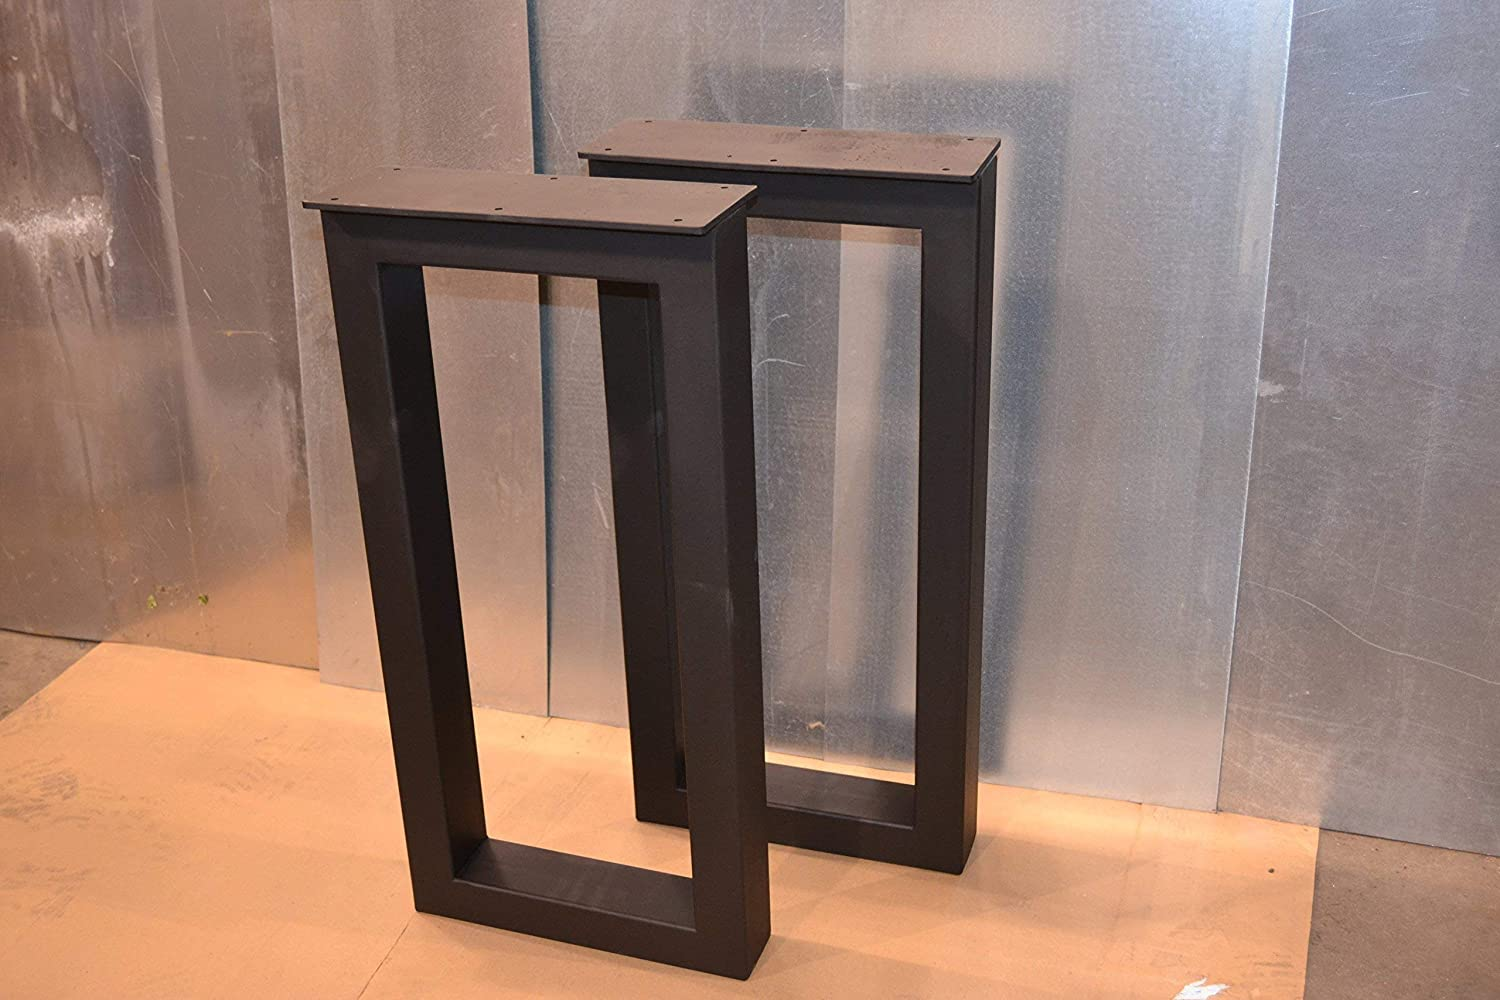 Metal Table Legs, Rectangular Style - Any Size and Color!